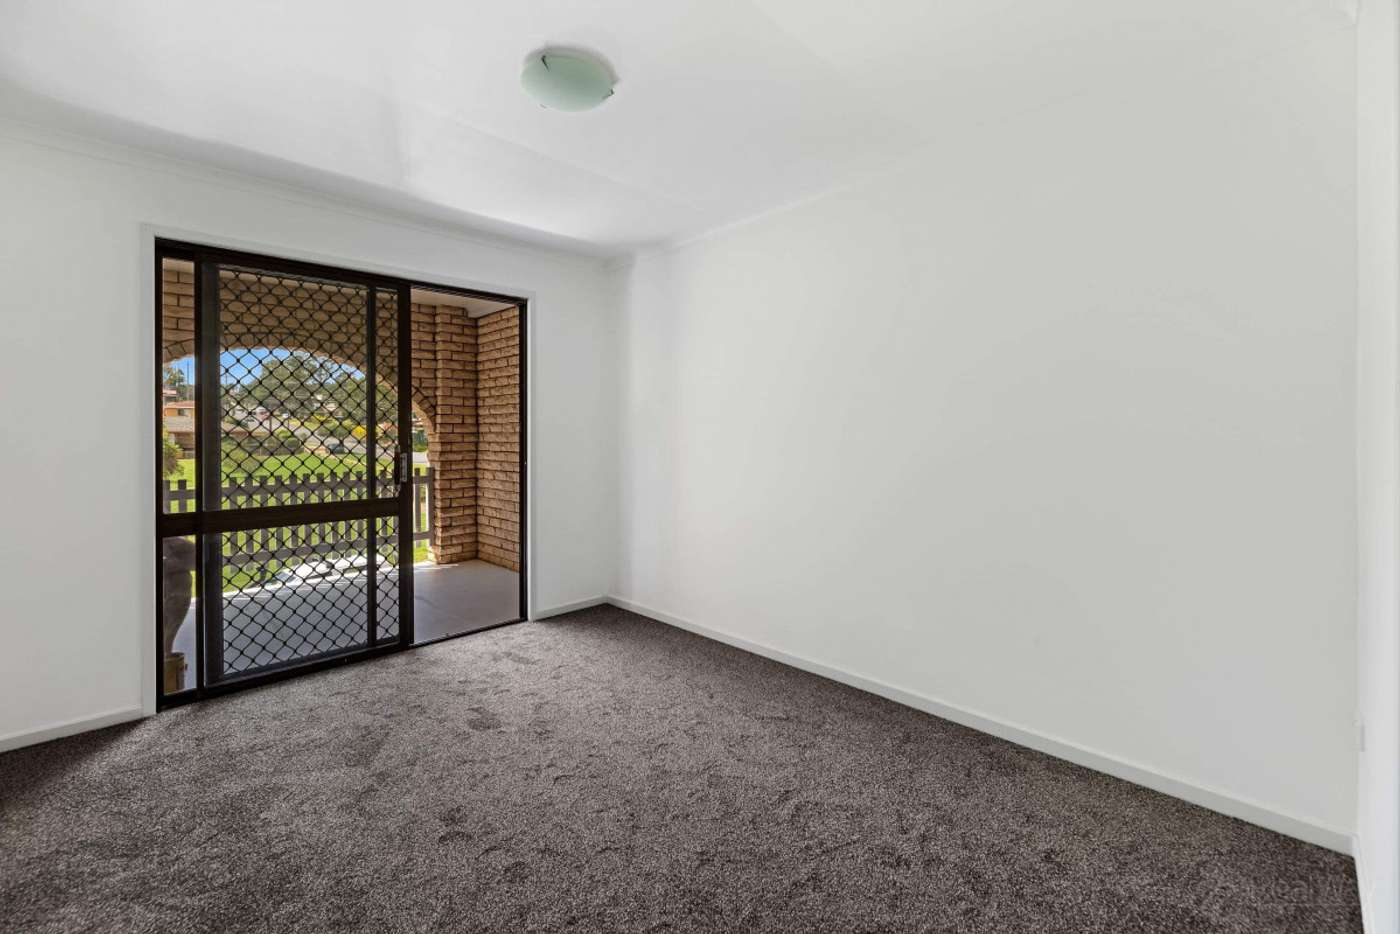 Fifth view of Homely unit listing, 2/329A Alderley Street, South Toowoomba QLD 4350